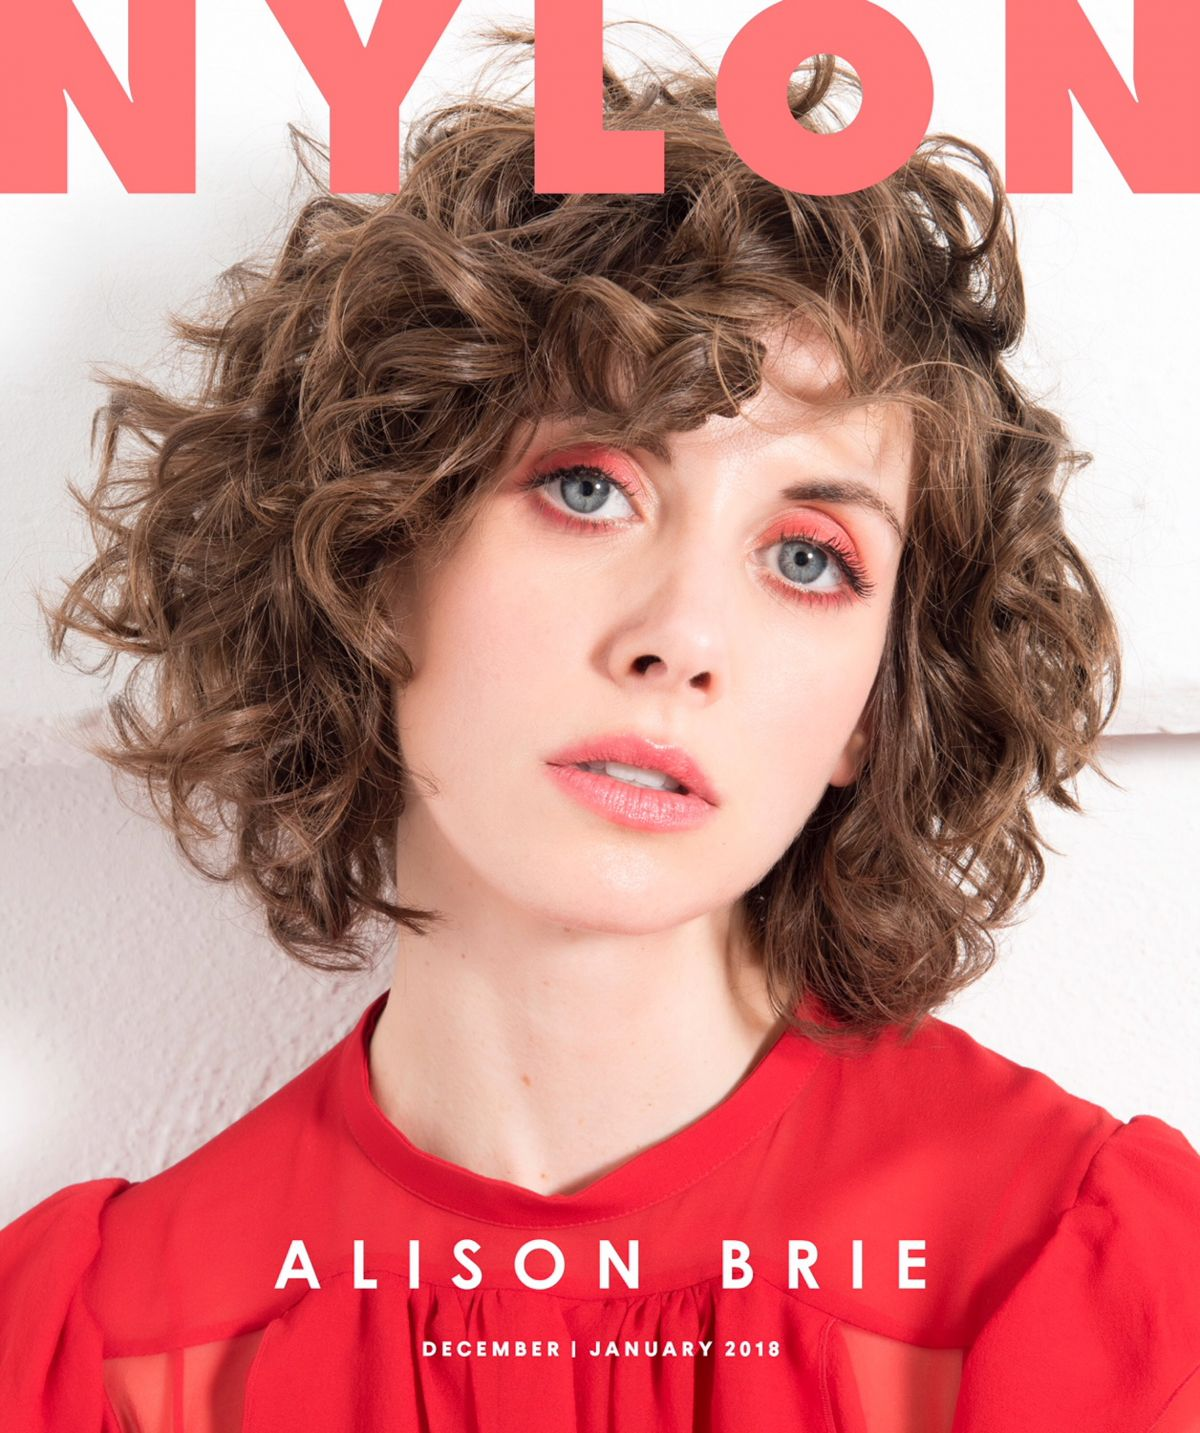 HD Photos & Wallpaper of Alison Brie For Nylon Magazine December 2017 January 2018